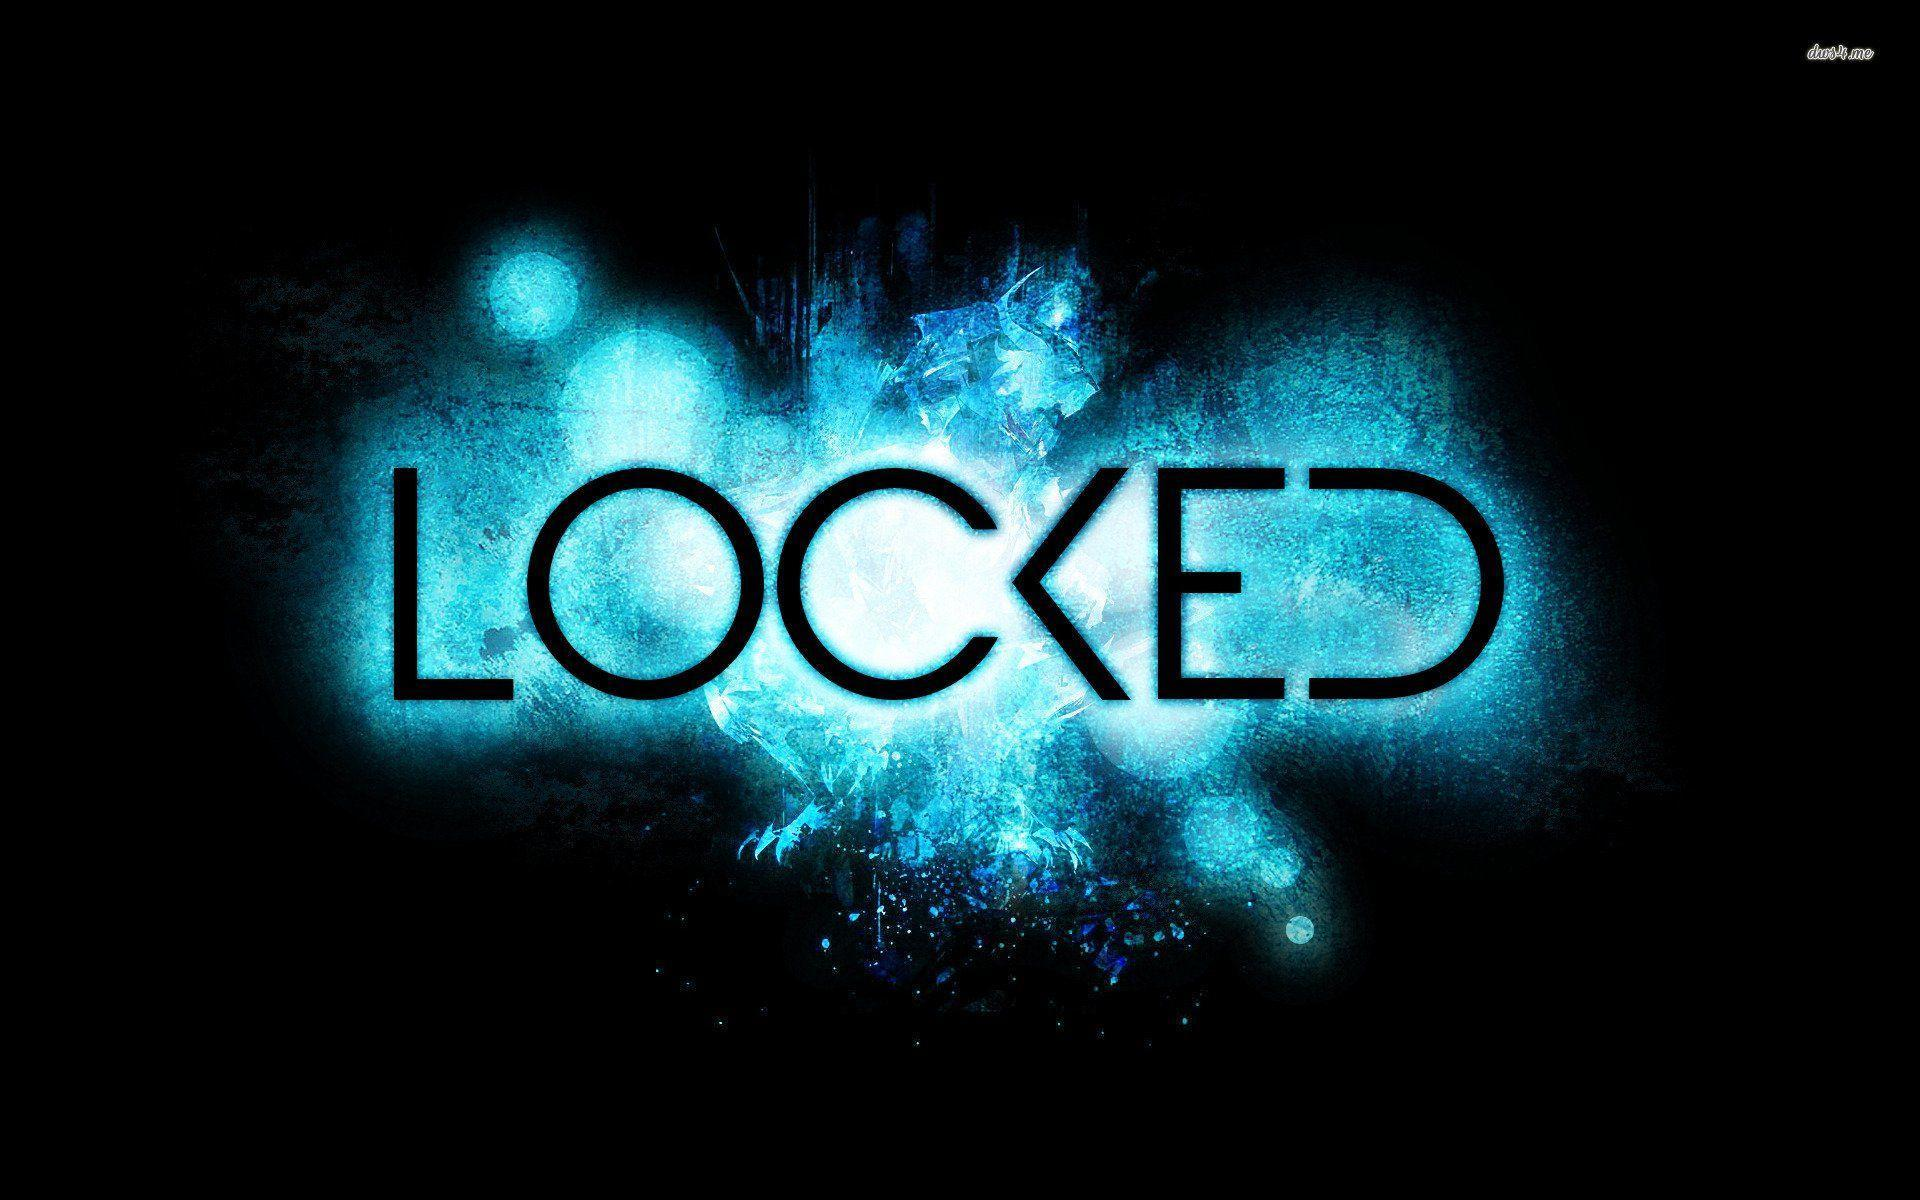 Locked Wallpapers - Wallpaper Cave